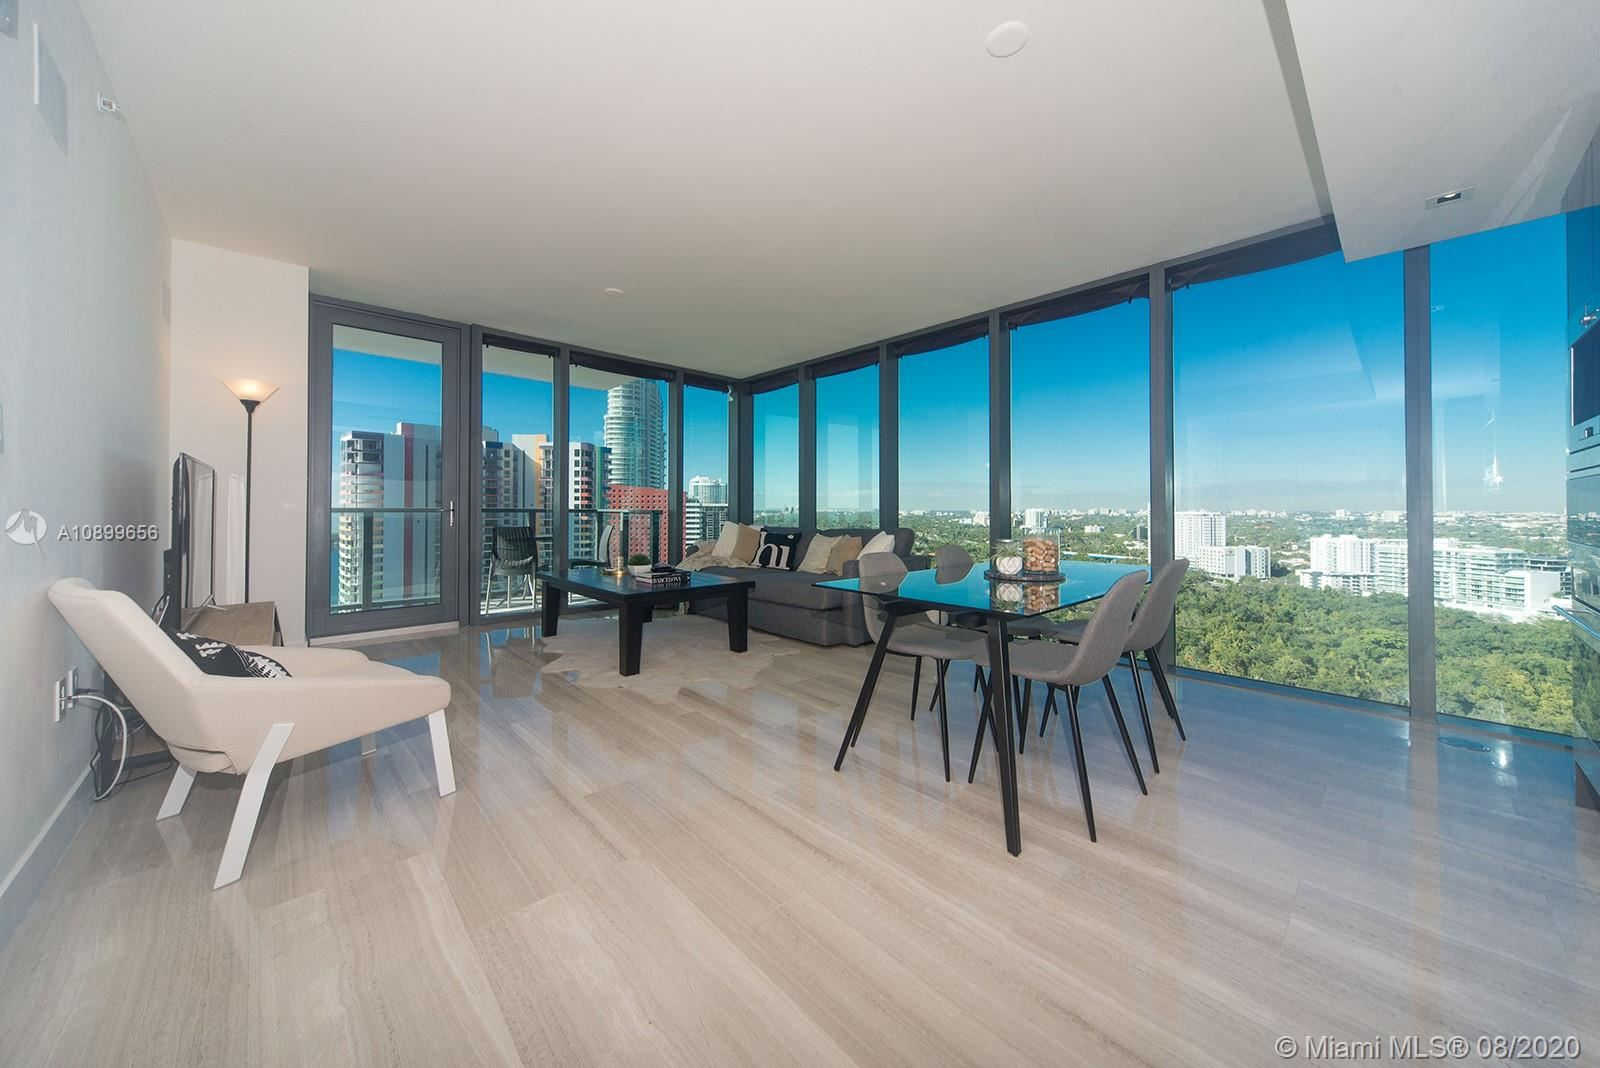 1451 Brickell Ave #2204, Miami, FL 33131 - #: A10899656